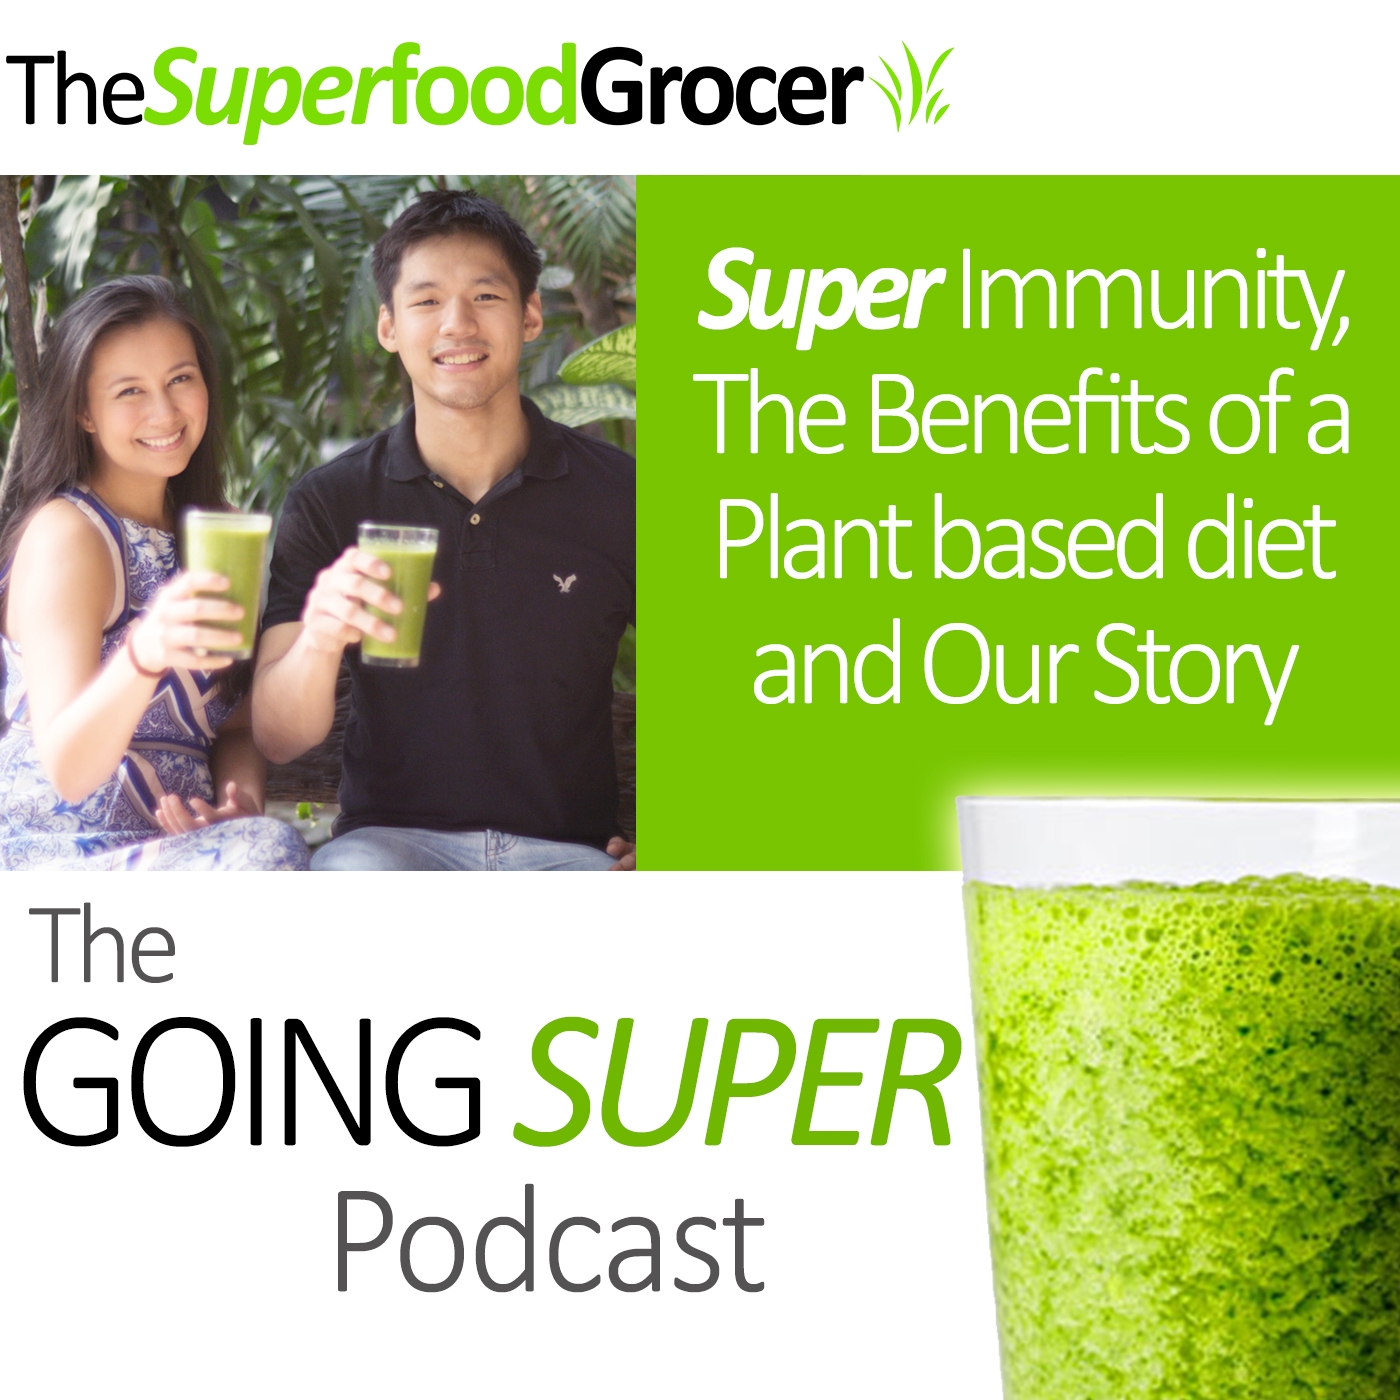 EP02: Super immunity, Benefits of a Plant based Diet and our Story